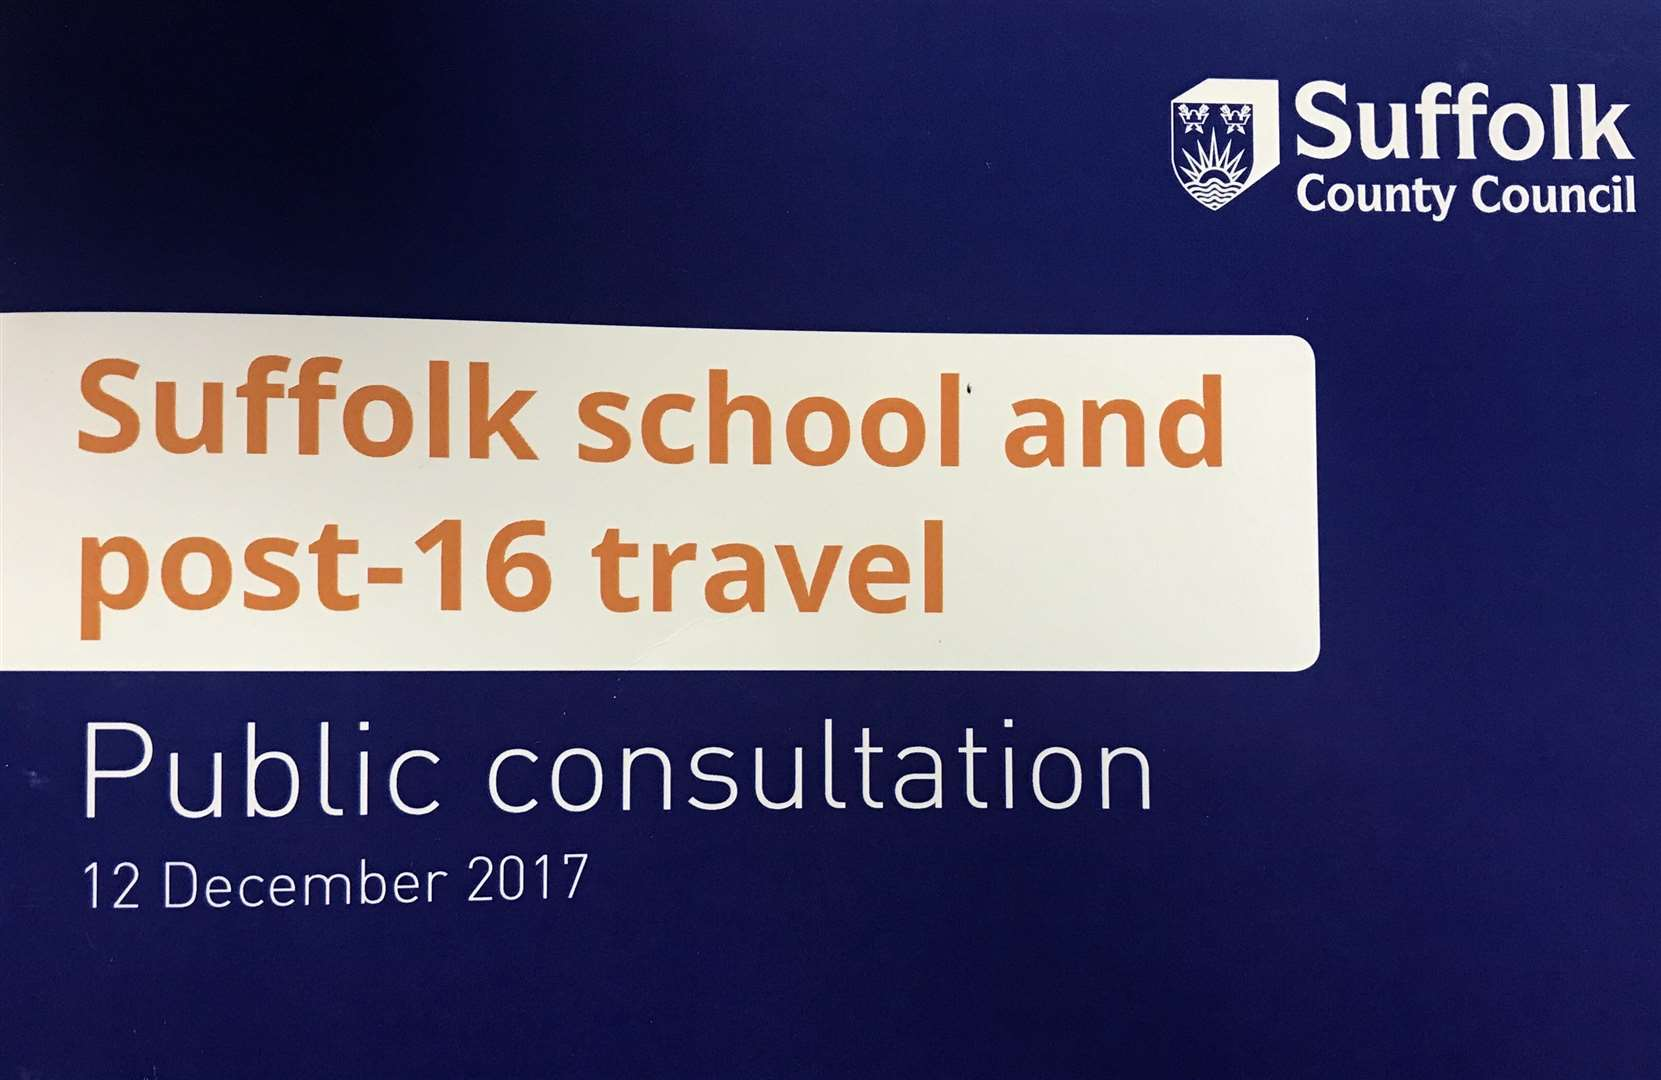 Suffolk County Council have proposed making cuts to school transport in order to save money (2049898)